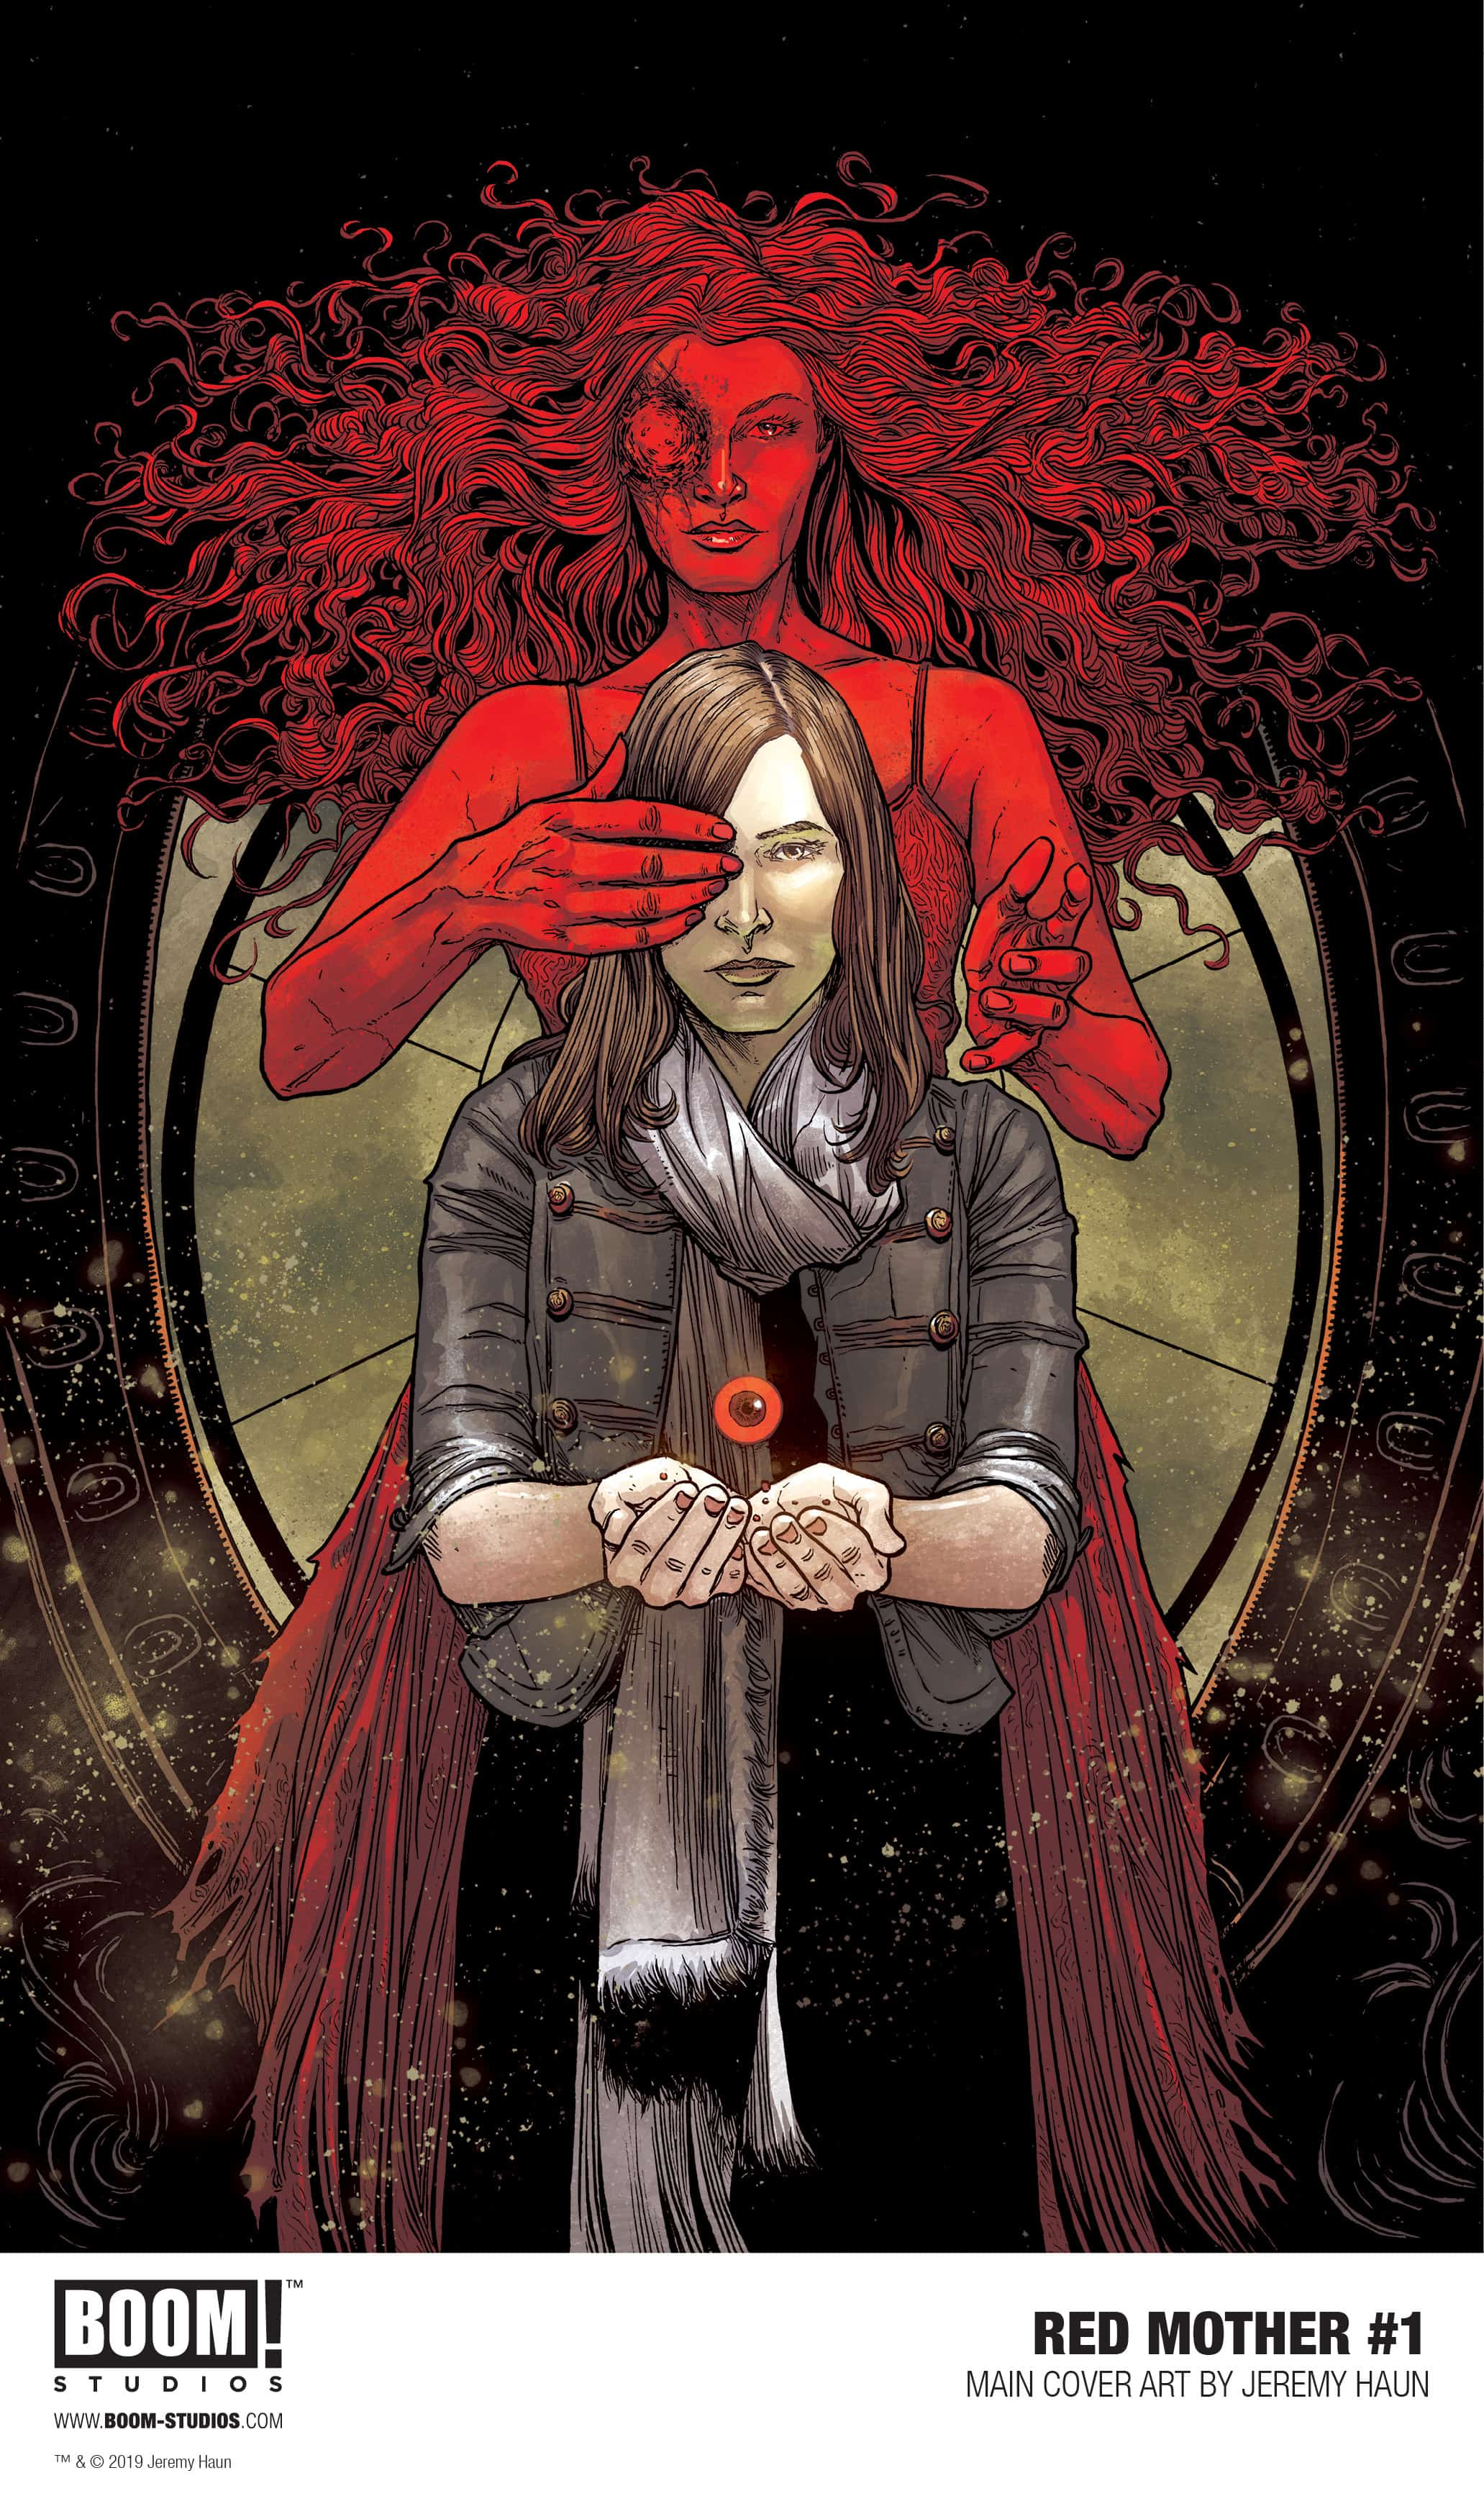 RED MOTHER serie de horror por jeremy haun e ilustrada pelo artista Danny Luckert.